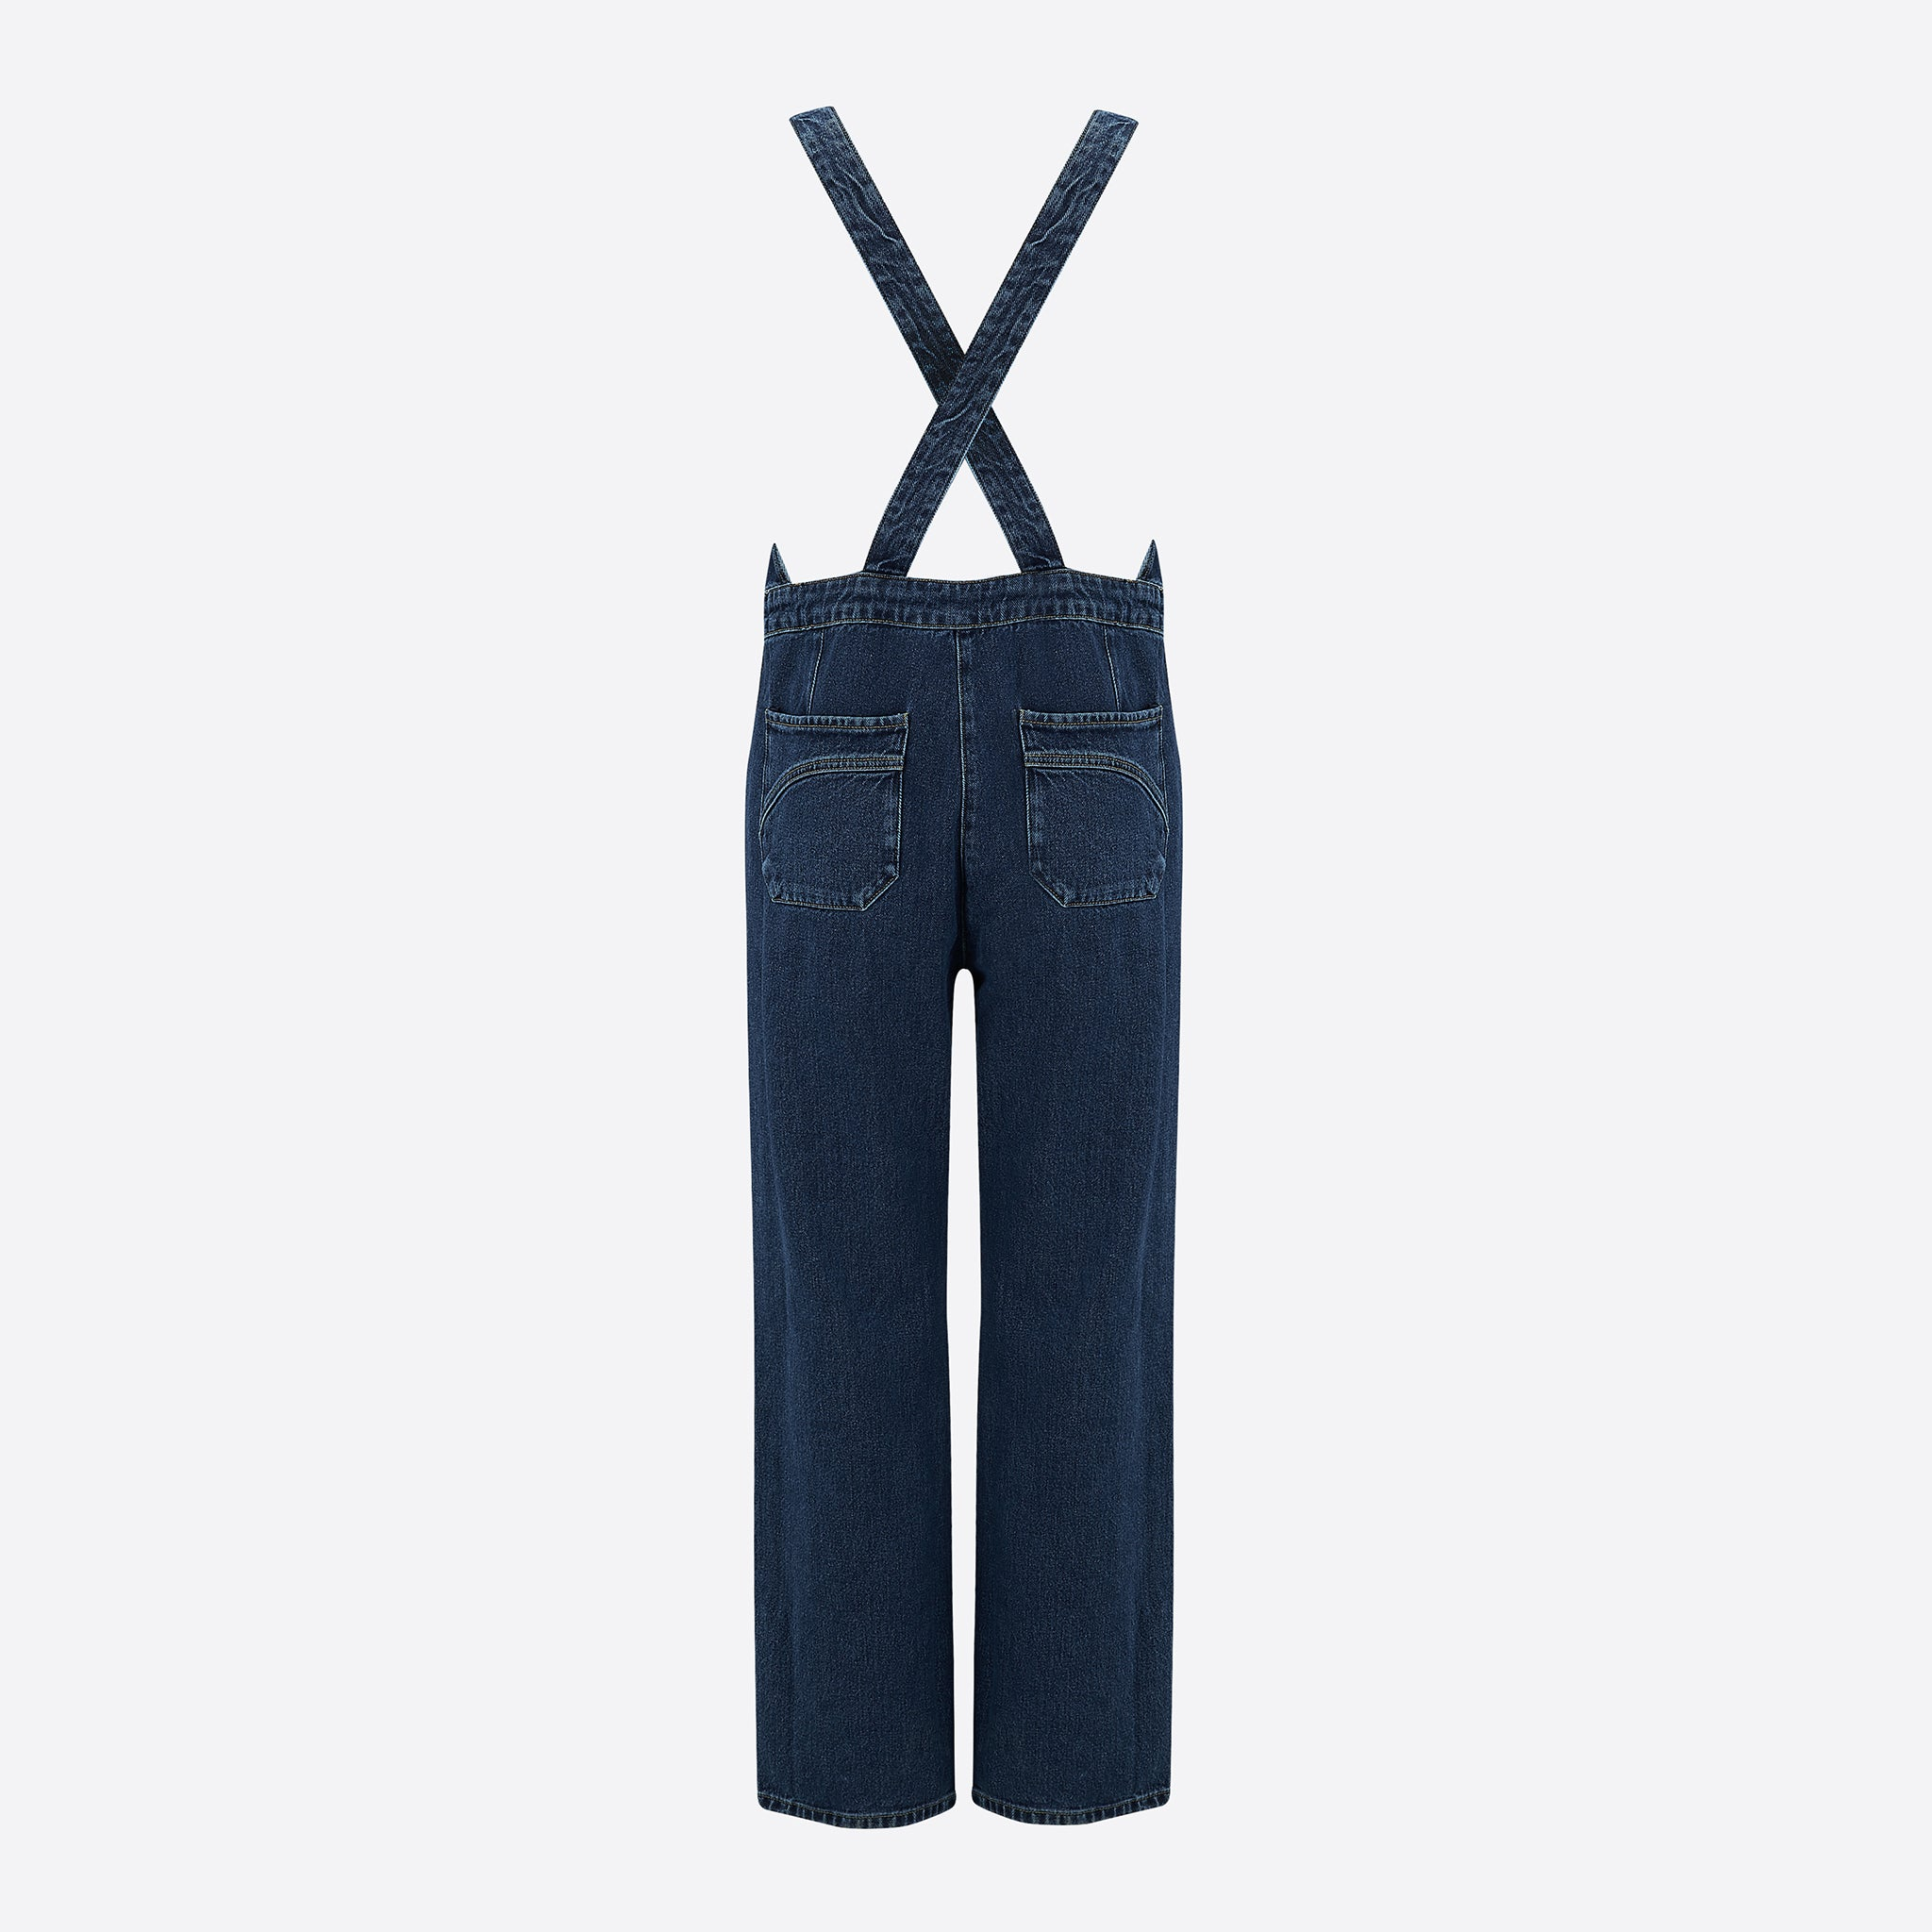 5be7bbc0a1e M.i.h Jeans Tribe Dungarees in Sussex M.i.h Jeans Tribe Dungarees in Sussex  ...